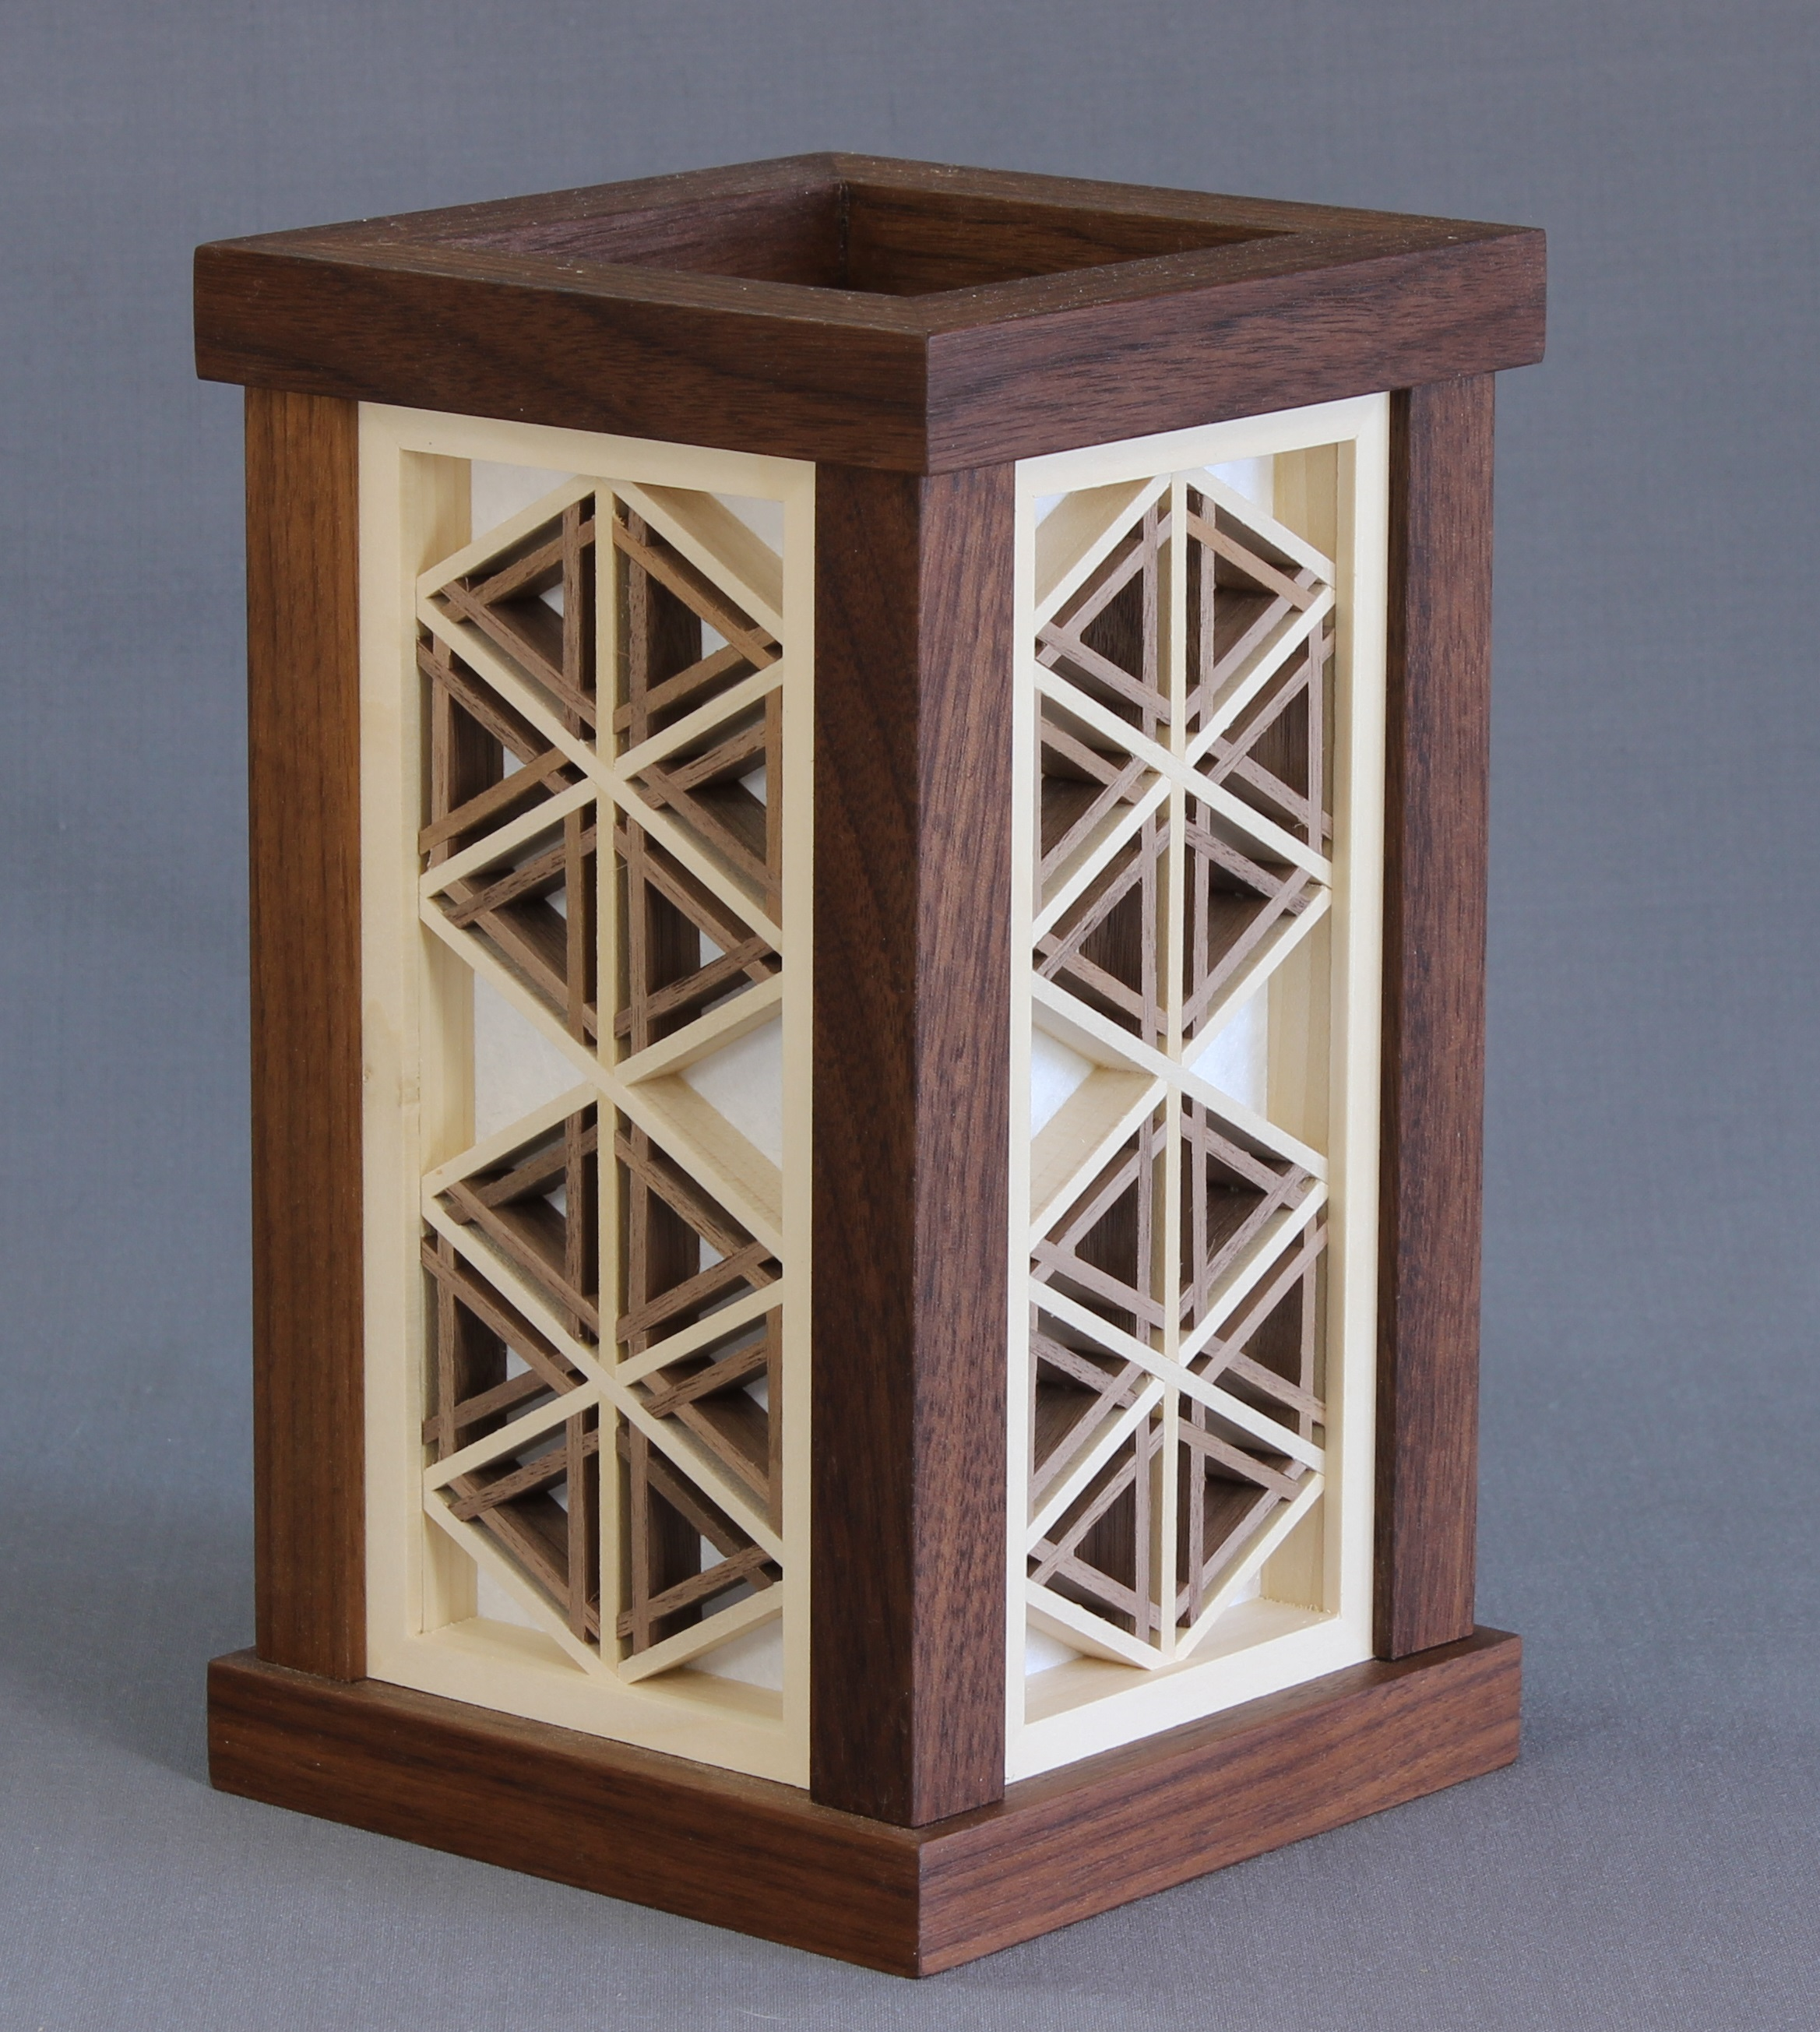 Andon Model #52   430.00 USD  8 7/8 x 5 5/16 x 5 5/16 inches  Shown in Walnut, made to order available in any domestic species.  Japanese shoji paper over wood.  Supplied with a led light fixture manufactured from UL listed parts.